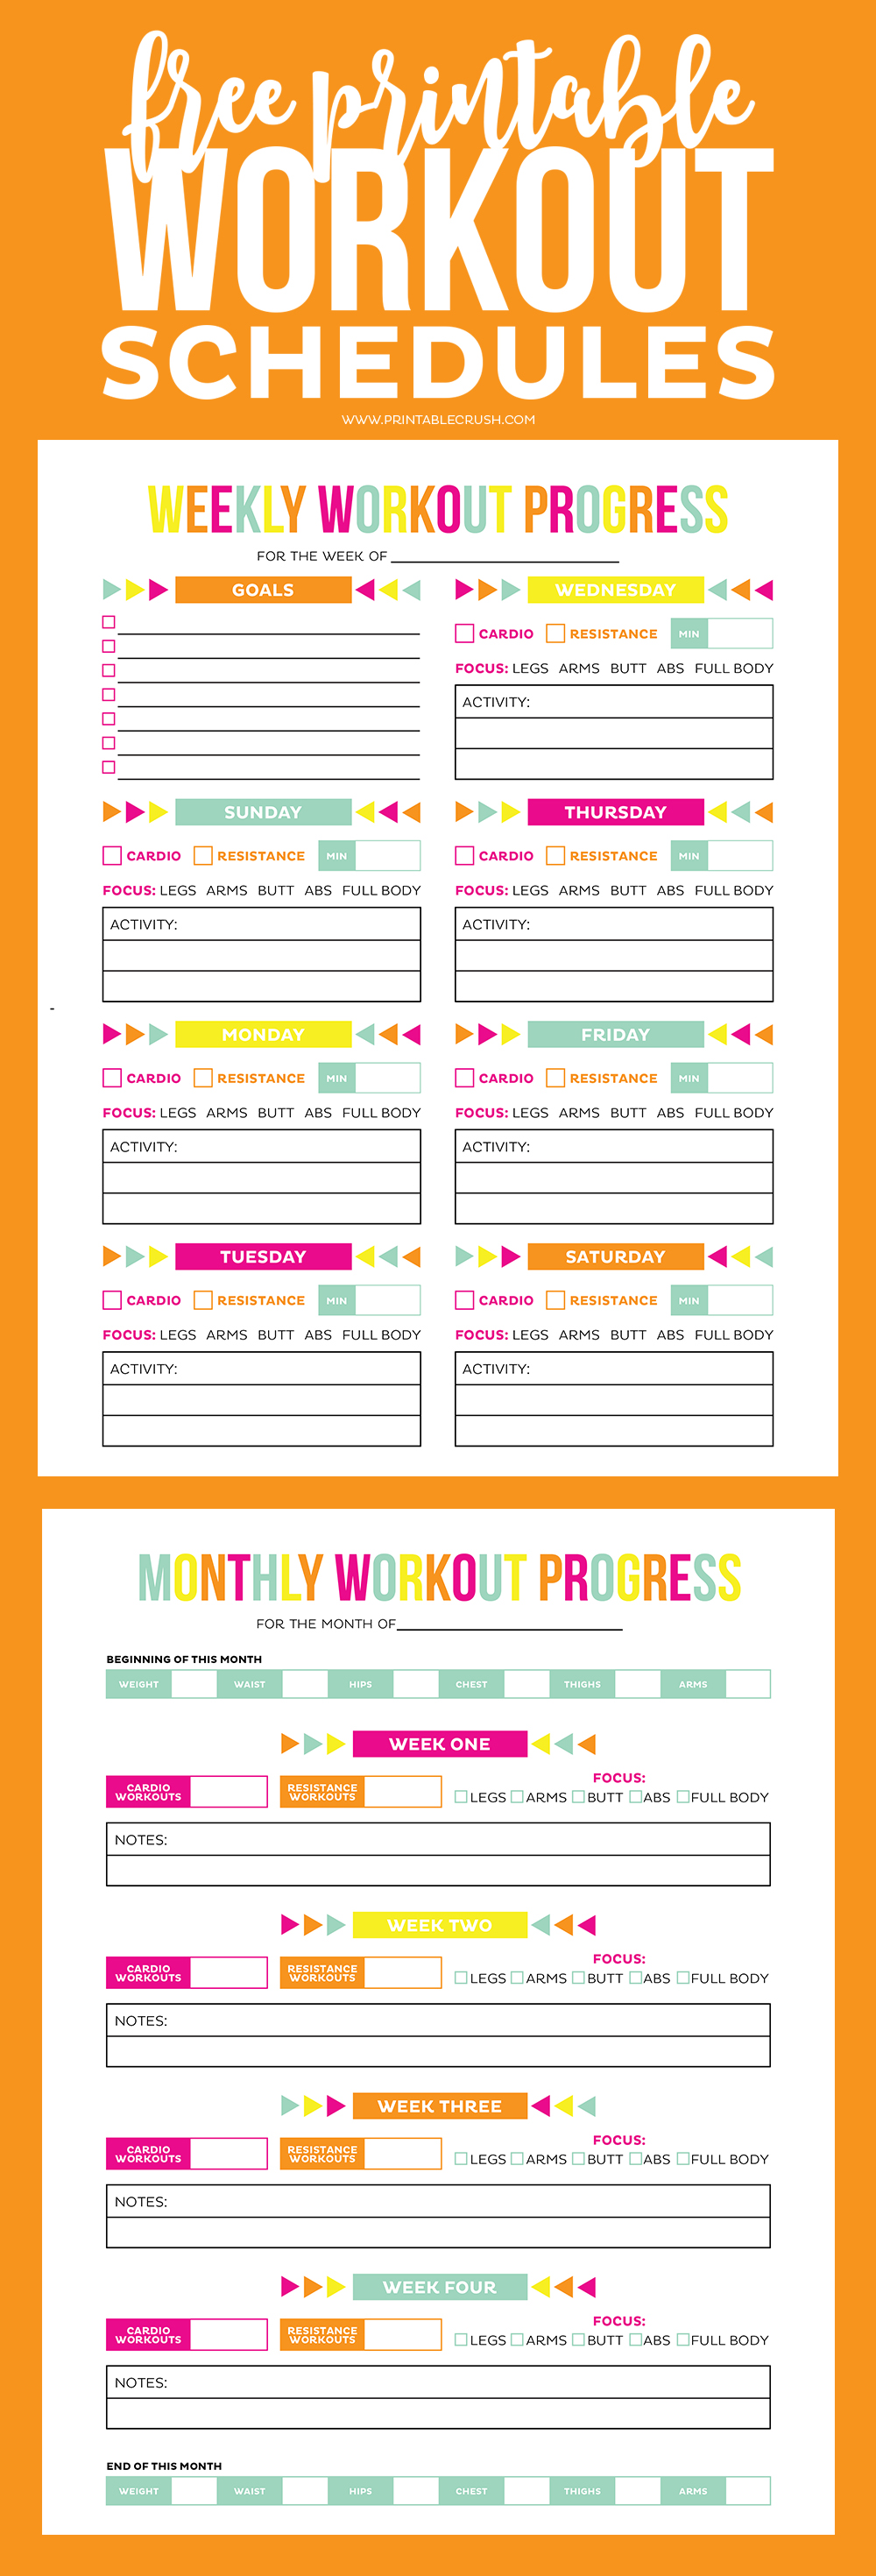 image regarding Printable Workout Routines referred to as Training Calendar - Totally free Printable Plan/Advancements Sheets